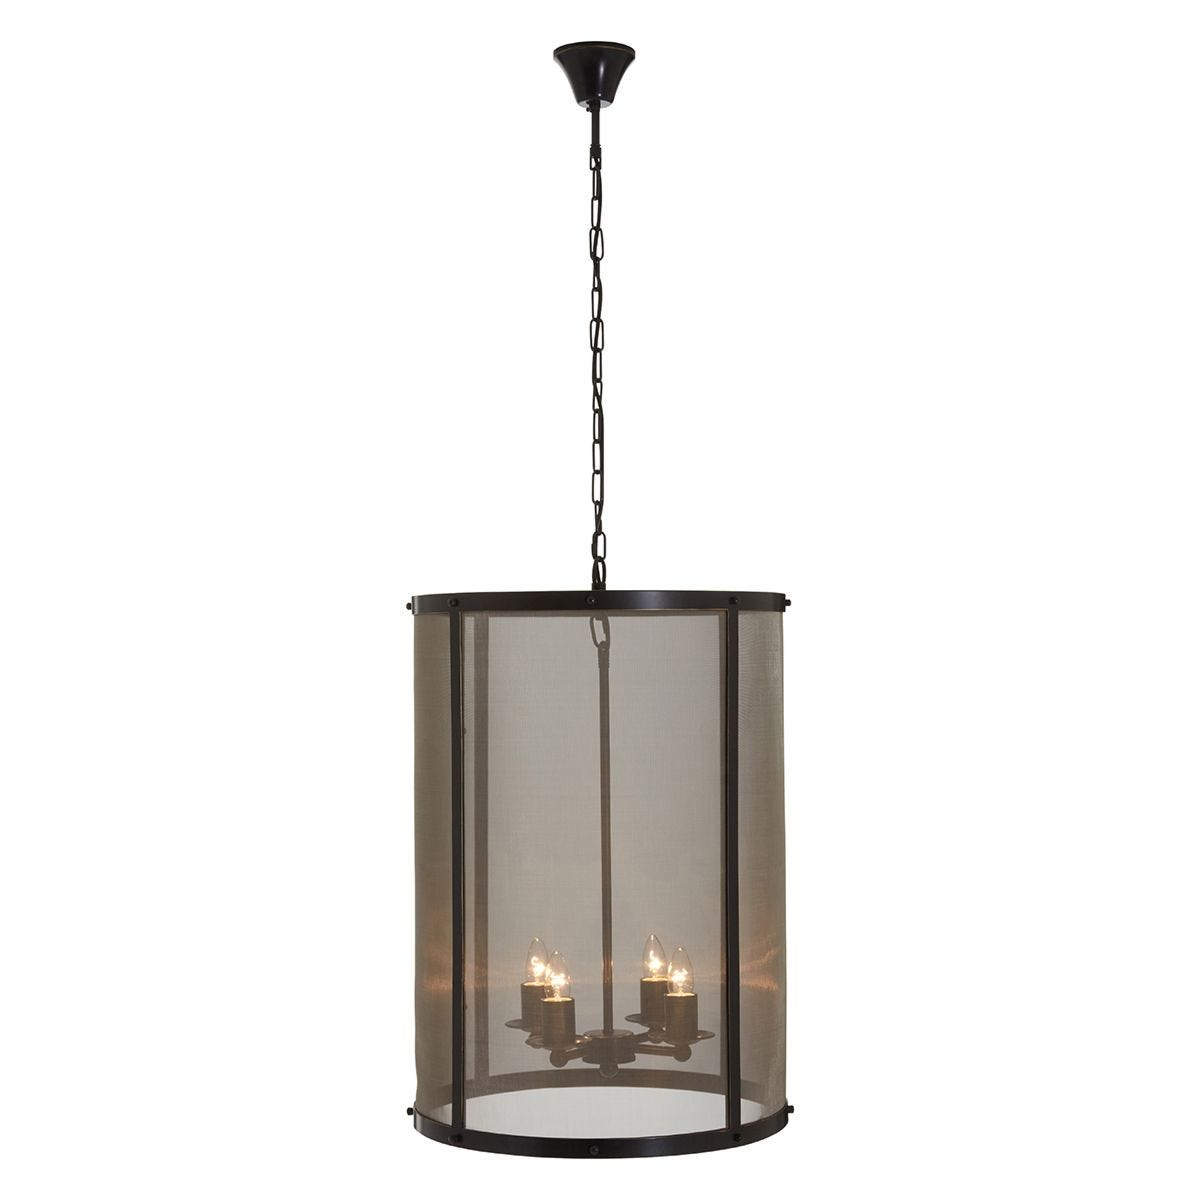 Premier Housewares Hampstead Large Pendant Light in Iron with Gauze - Antique Black/Gold Finish